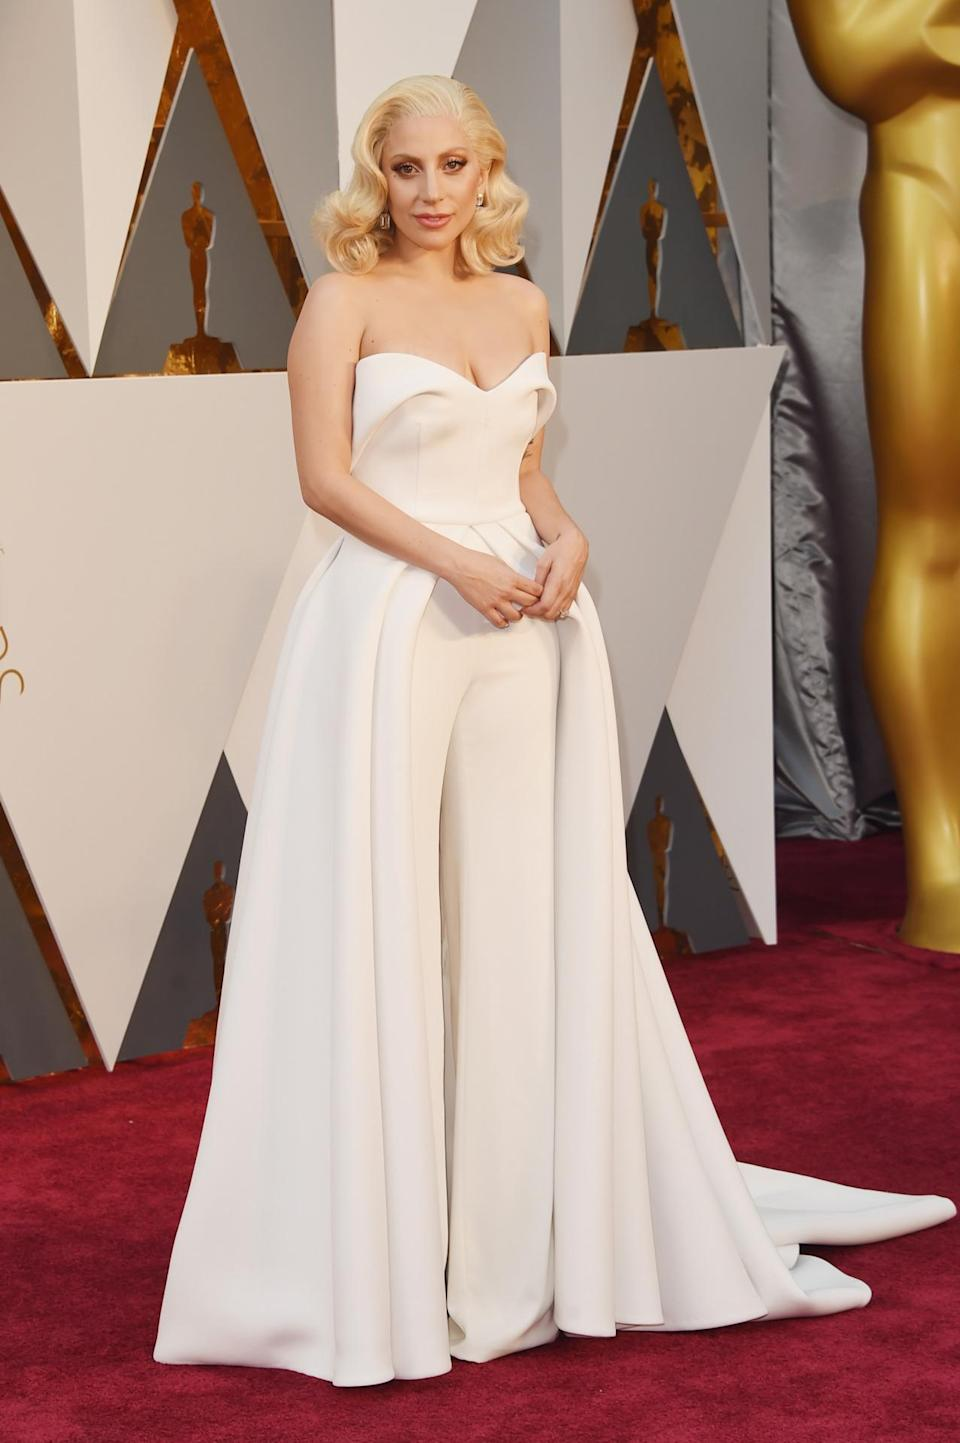 """<p>Wearing a white jumpsuit with a train, Lady Gaga brought innovation to the red carpet. Not only did the piece look amazing on the singer, it also made her feel confident. """"I never thought anyone would ever love me because I felt like my body was ruined by my abuser,"""" Gaga shared in an Instagram post from the ceremony alongside a photo of her kissing her fiancé, Taylor Kinney. """"But he loves the survivor in me. He's stood by me all night proud and unashamedly. THATS a real man."""" <i><i>(Photo: Getty Images)</i></i></p>"""